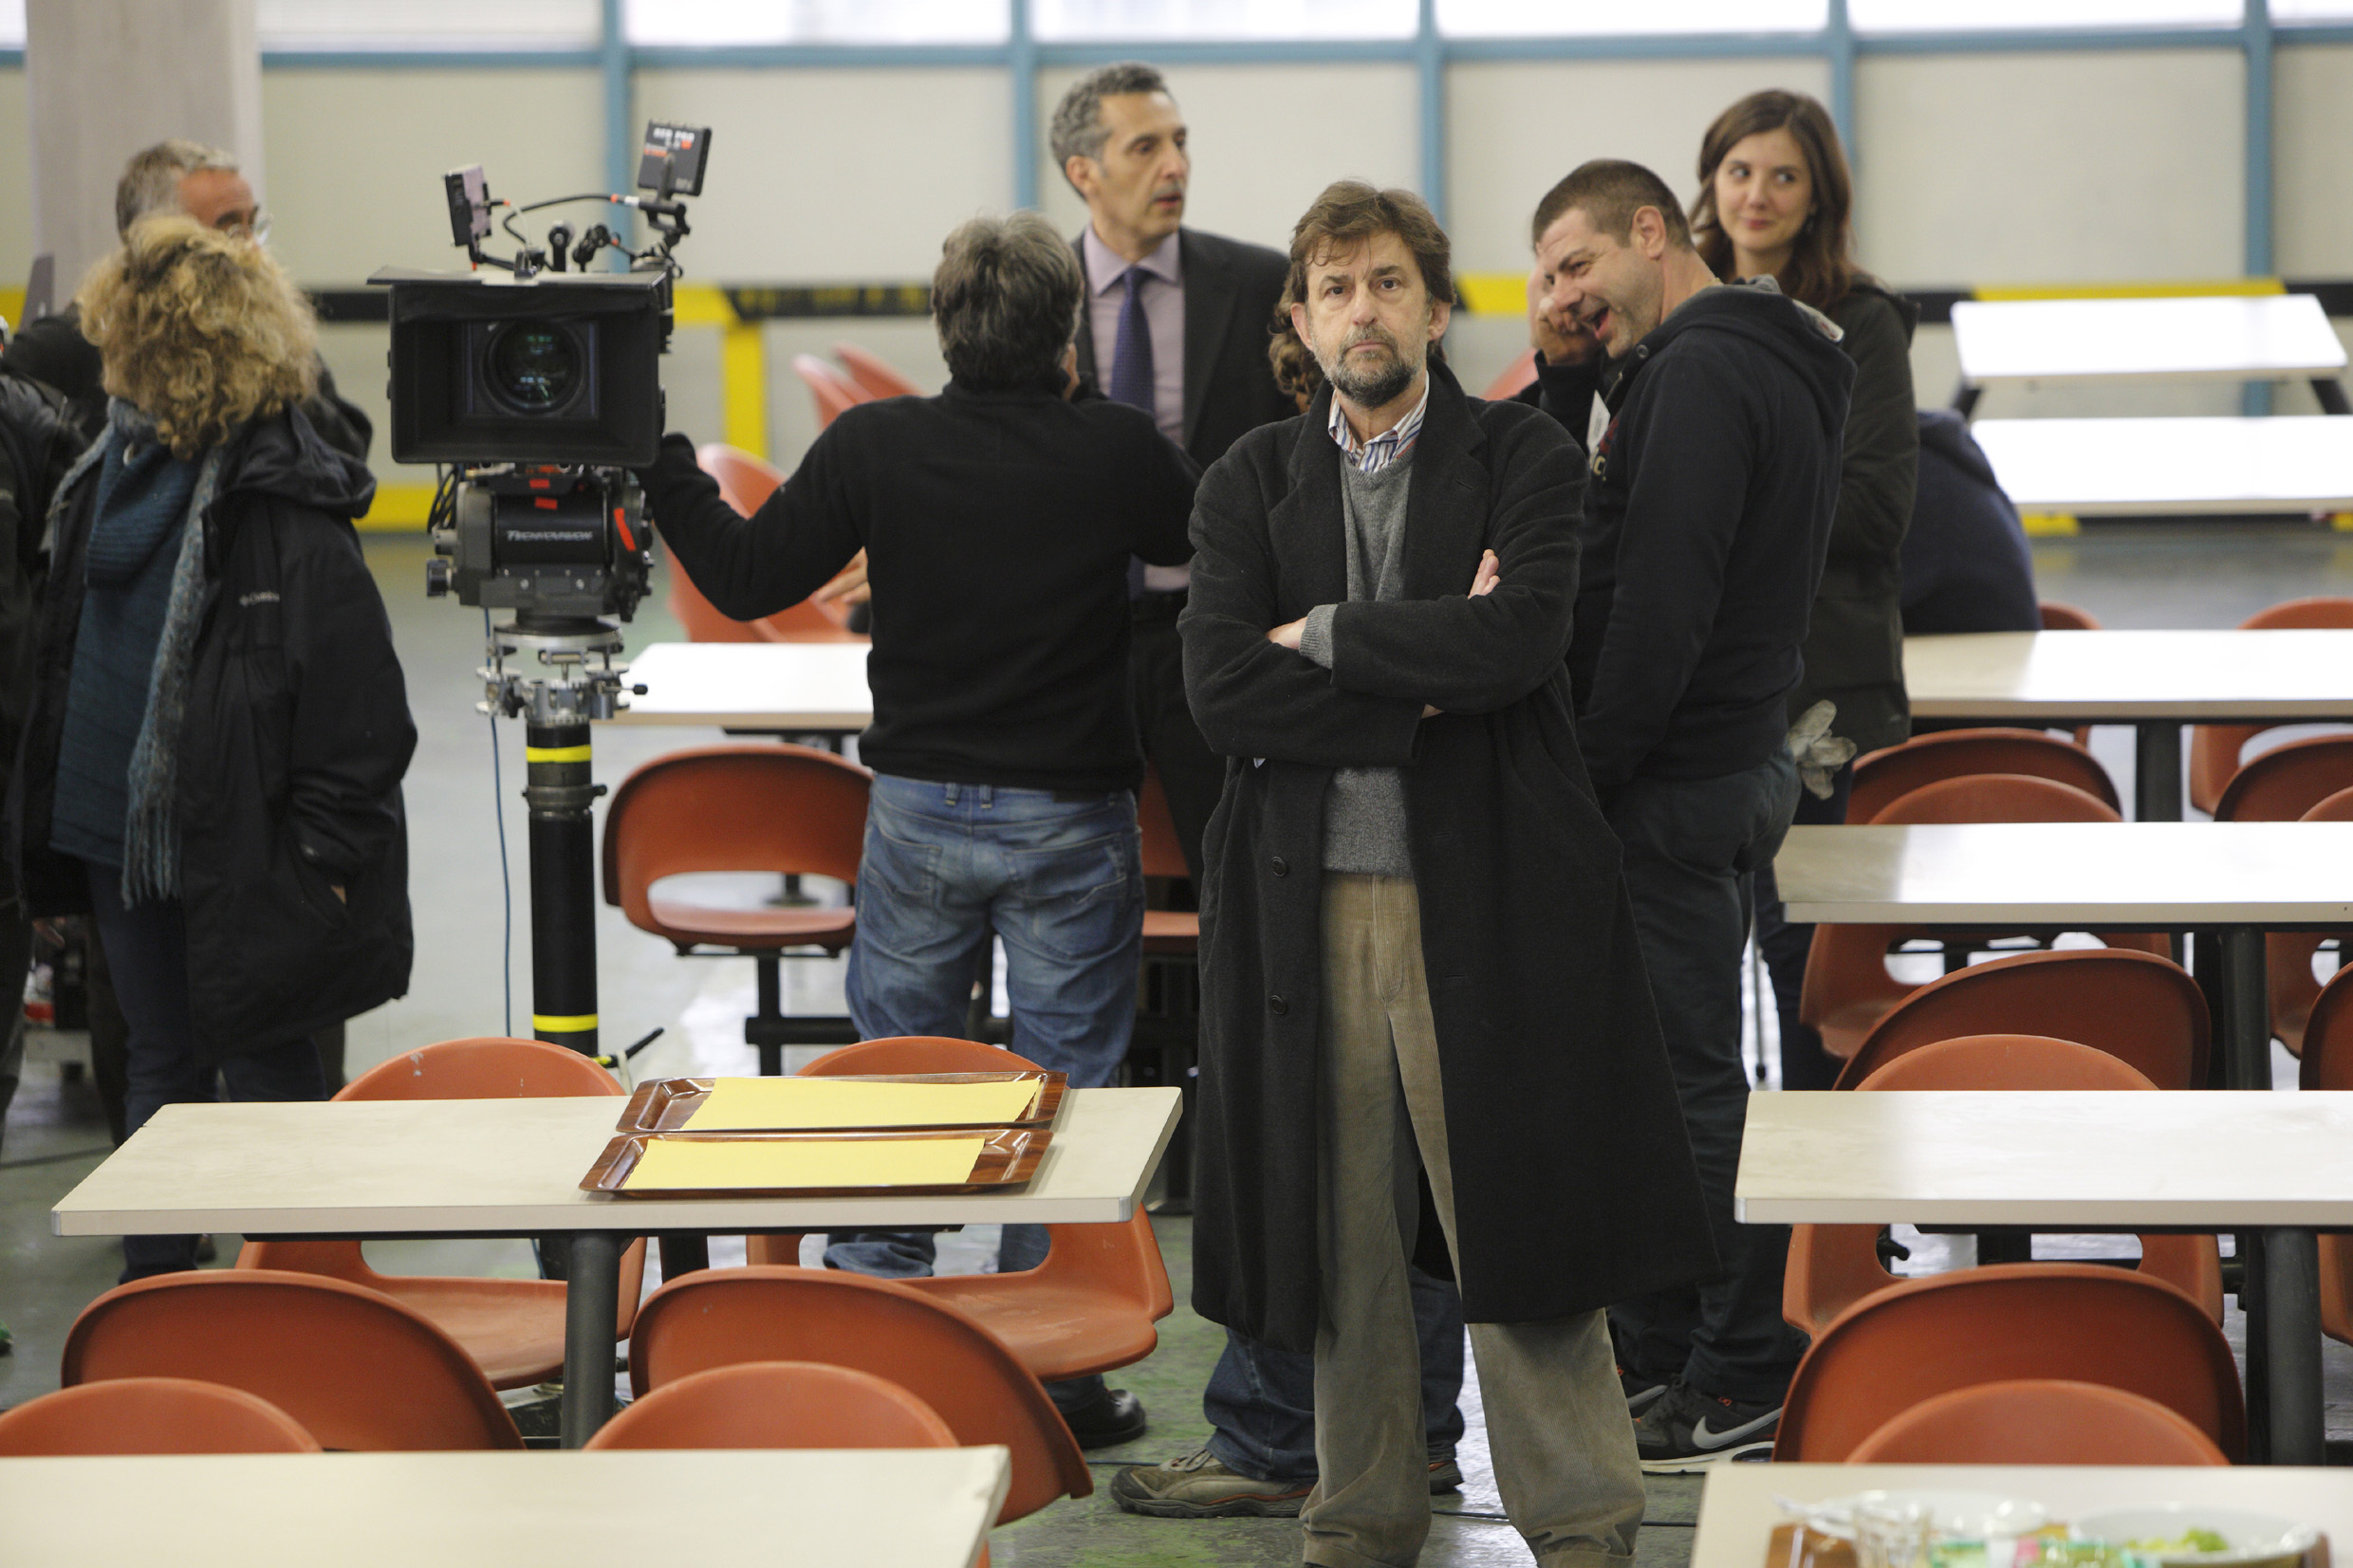 Nanni Moretti reflects on set.